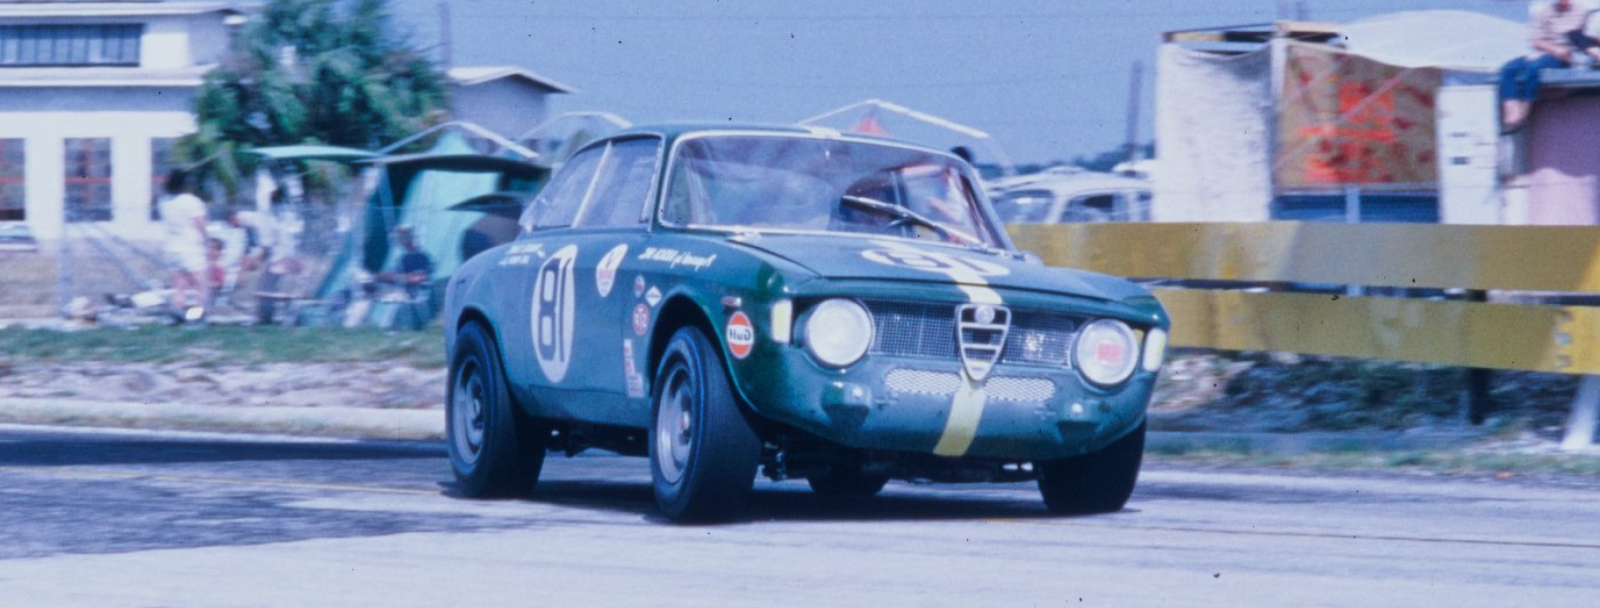 Alfa Romeo 12 Hours Of Sebring Trans Am